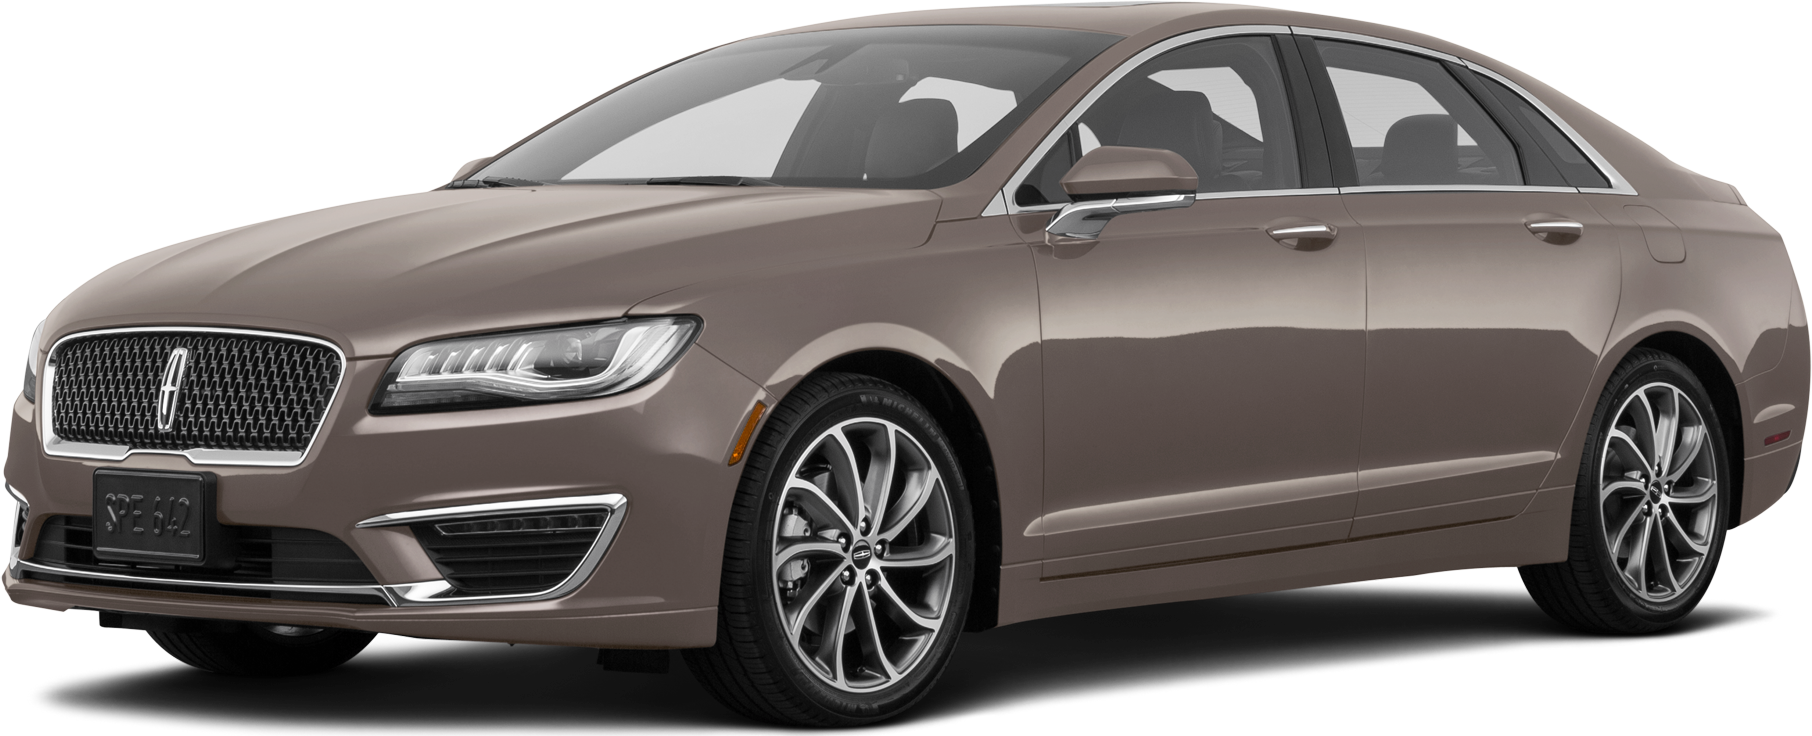 2019 Lincoln MKX: New Name, New Styling, Tech, Interior And Updated Powertrains >> 2019 Lincoln Nautilus Pricing Ratings Expert Review